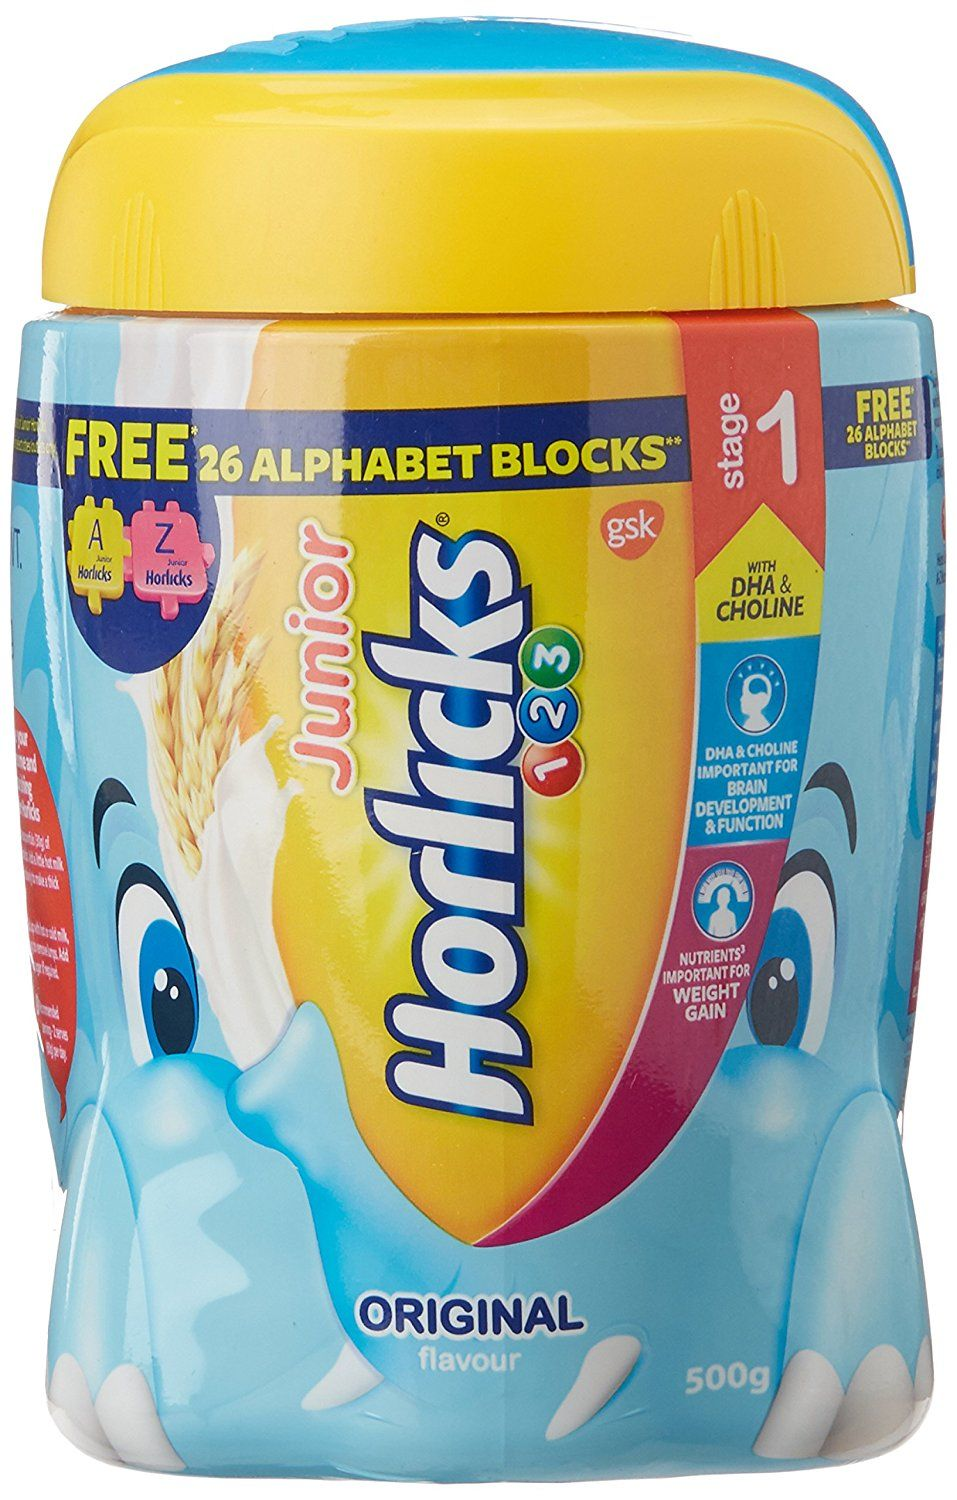 Junior Horlicks Stage 1 Health And Nutrition Drink 500 G Original With Free 26 Alphabets Blocks The Bigges Horlicks Nutrition Drinks Health And Nutrition